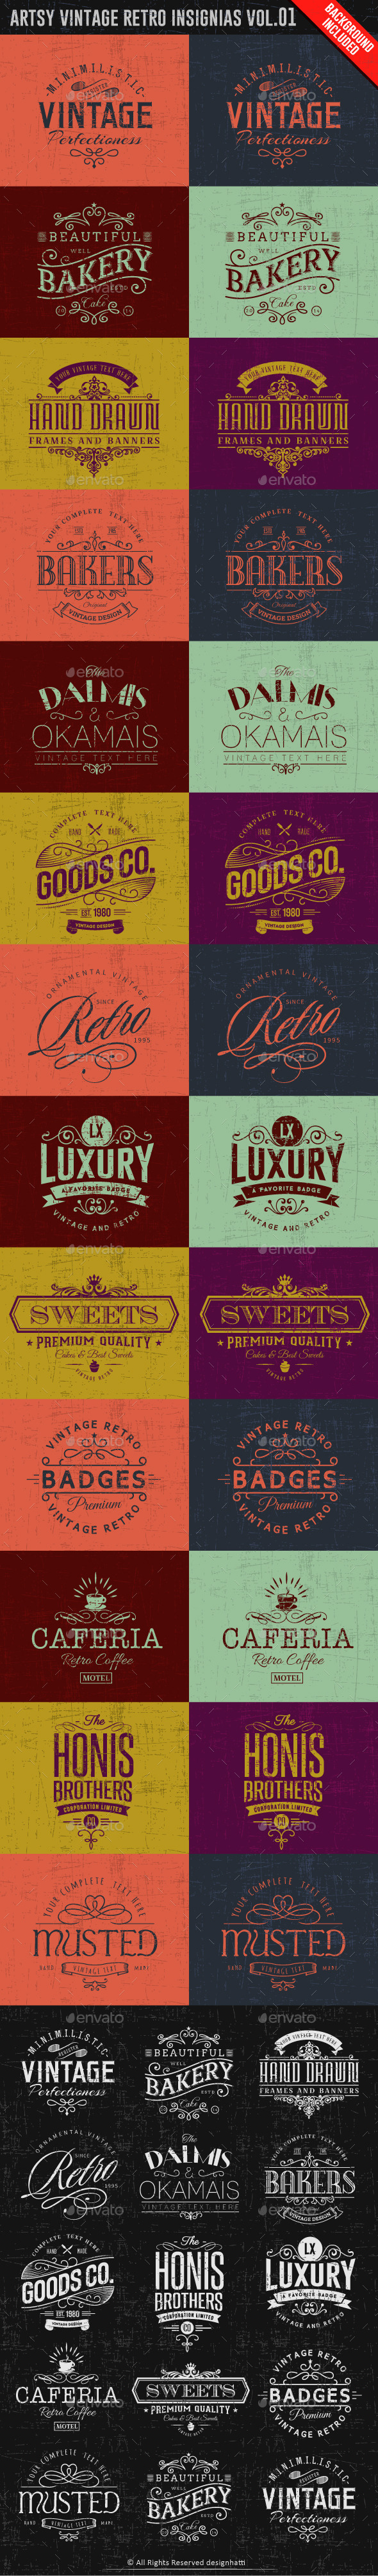 GraphicRiver Artsy Vintage Retro Insignia and Logos Vol.01 9945396